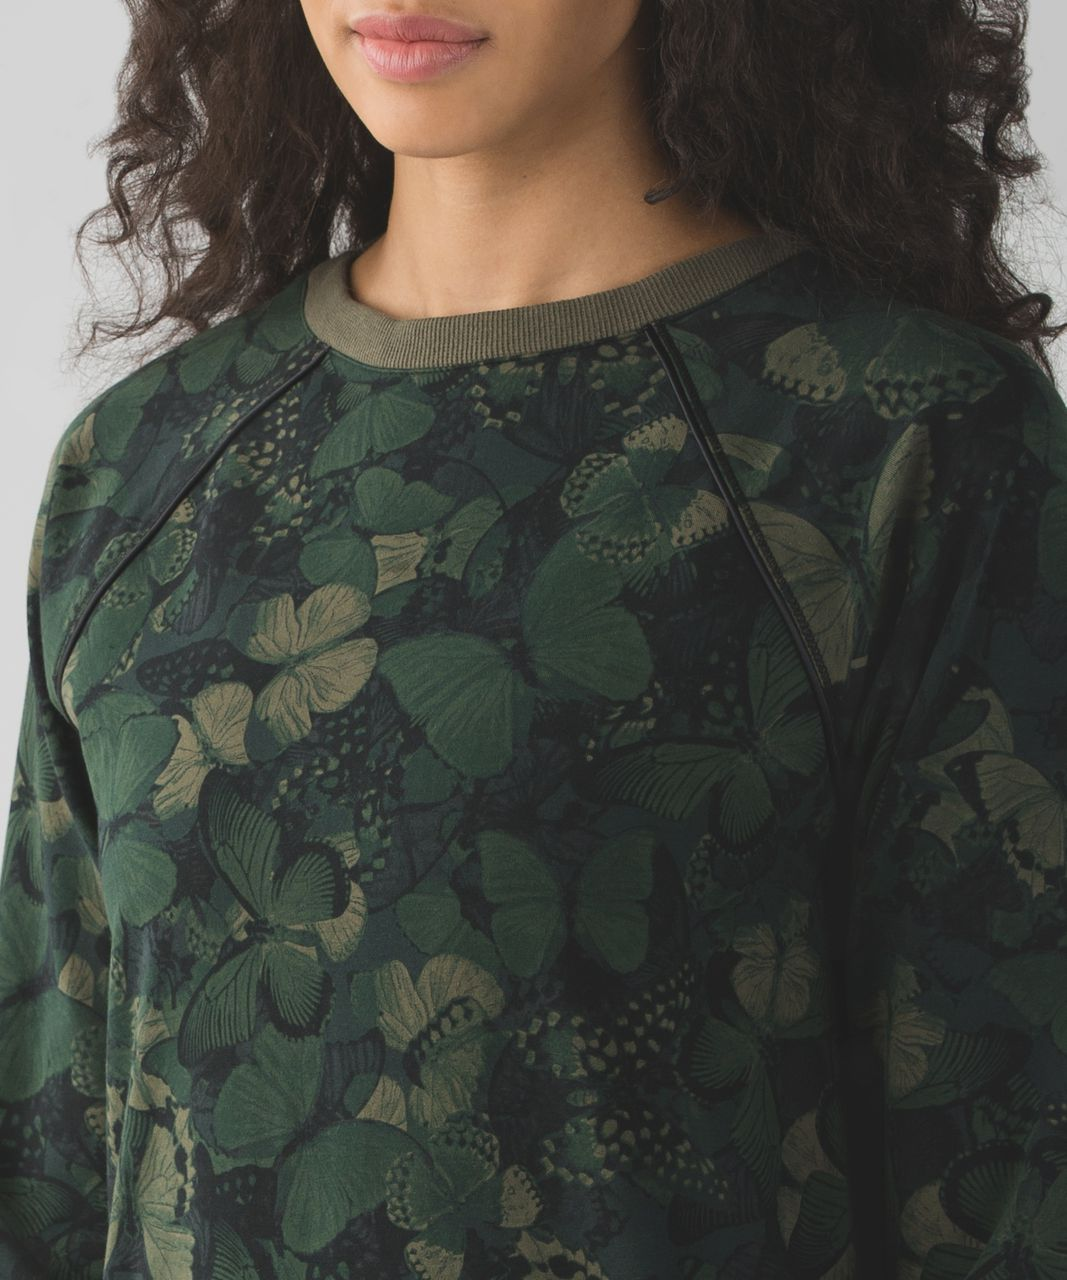 Lululemon Crew Love Pullover - Biggie So Fly Butterfly Fatigue Green Black / Fatigue Green